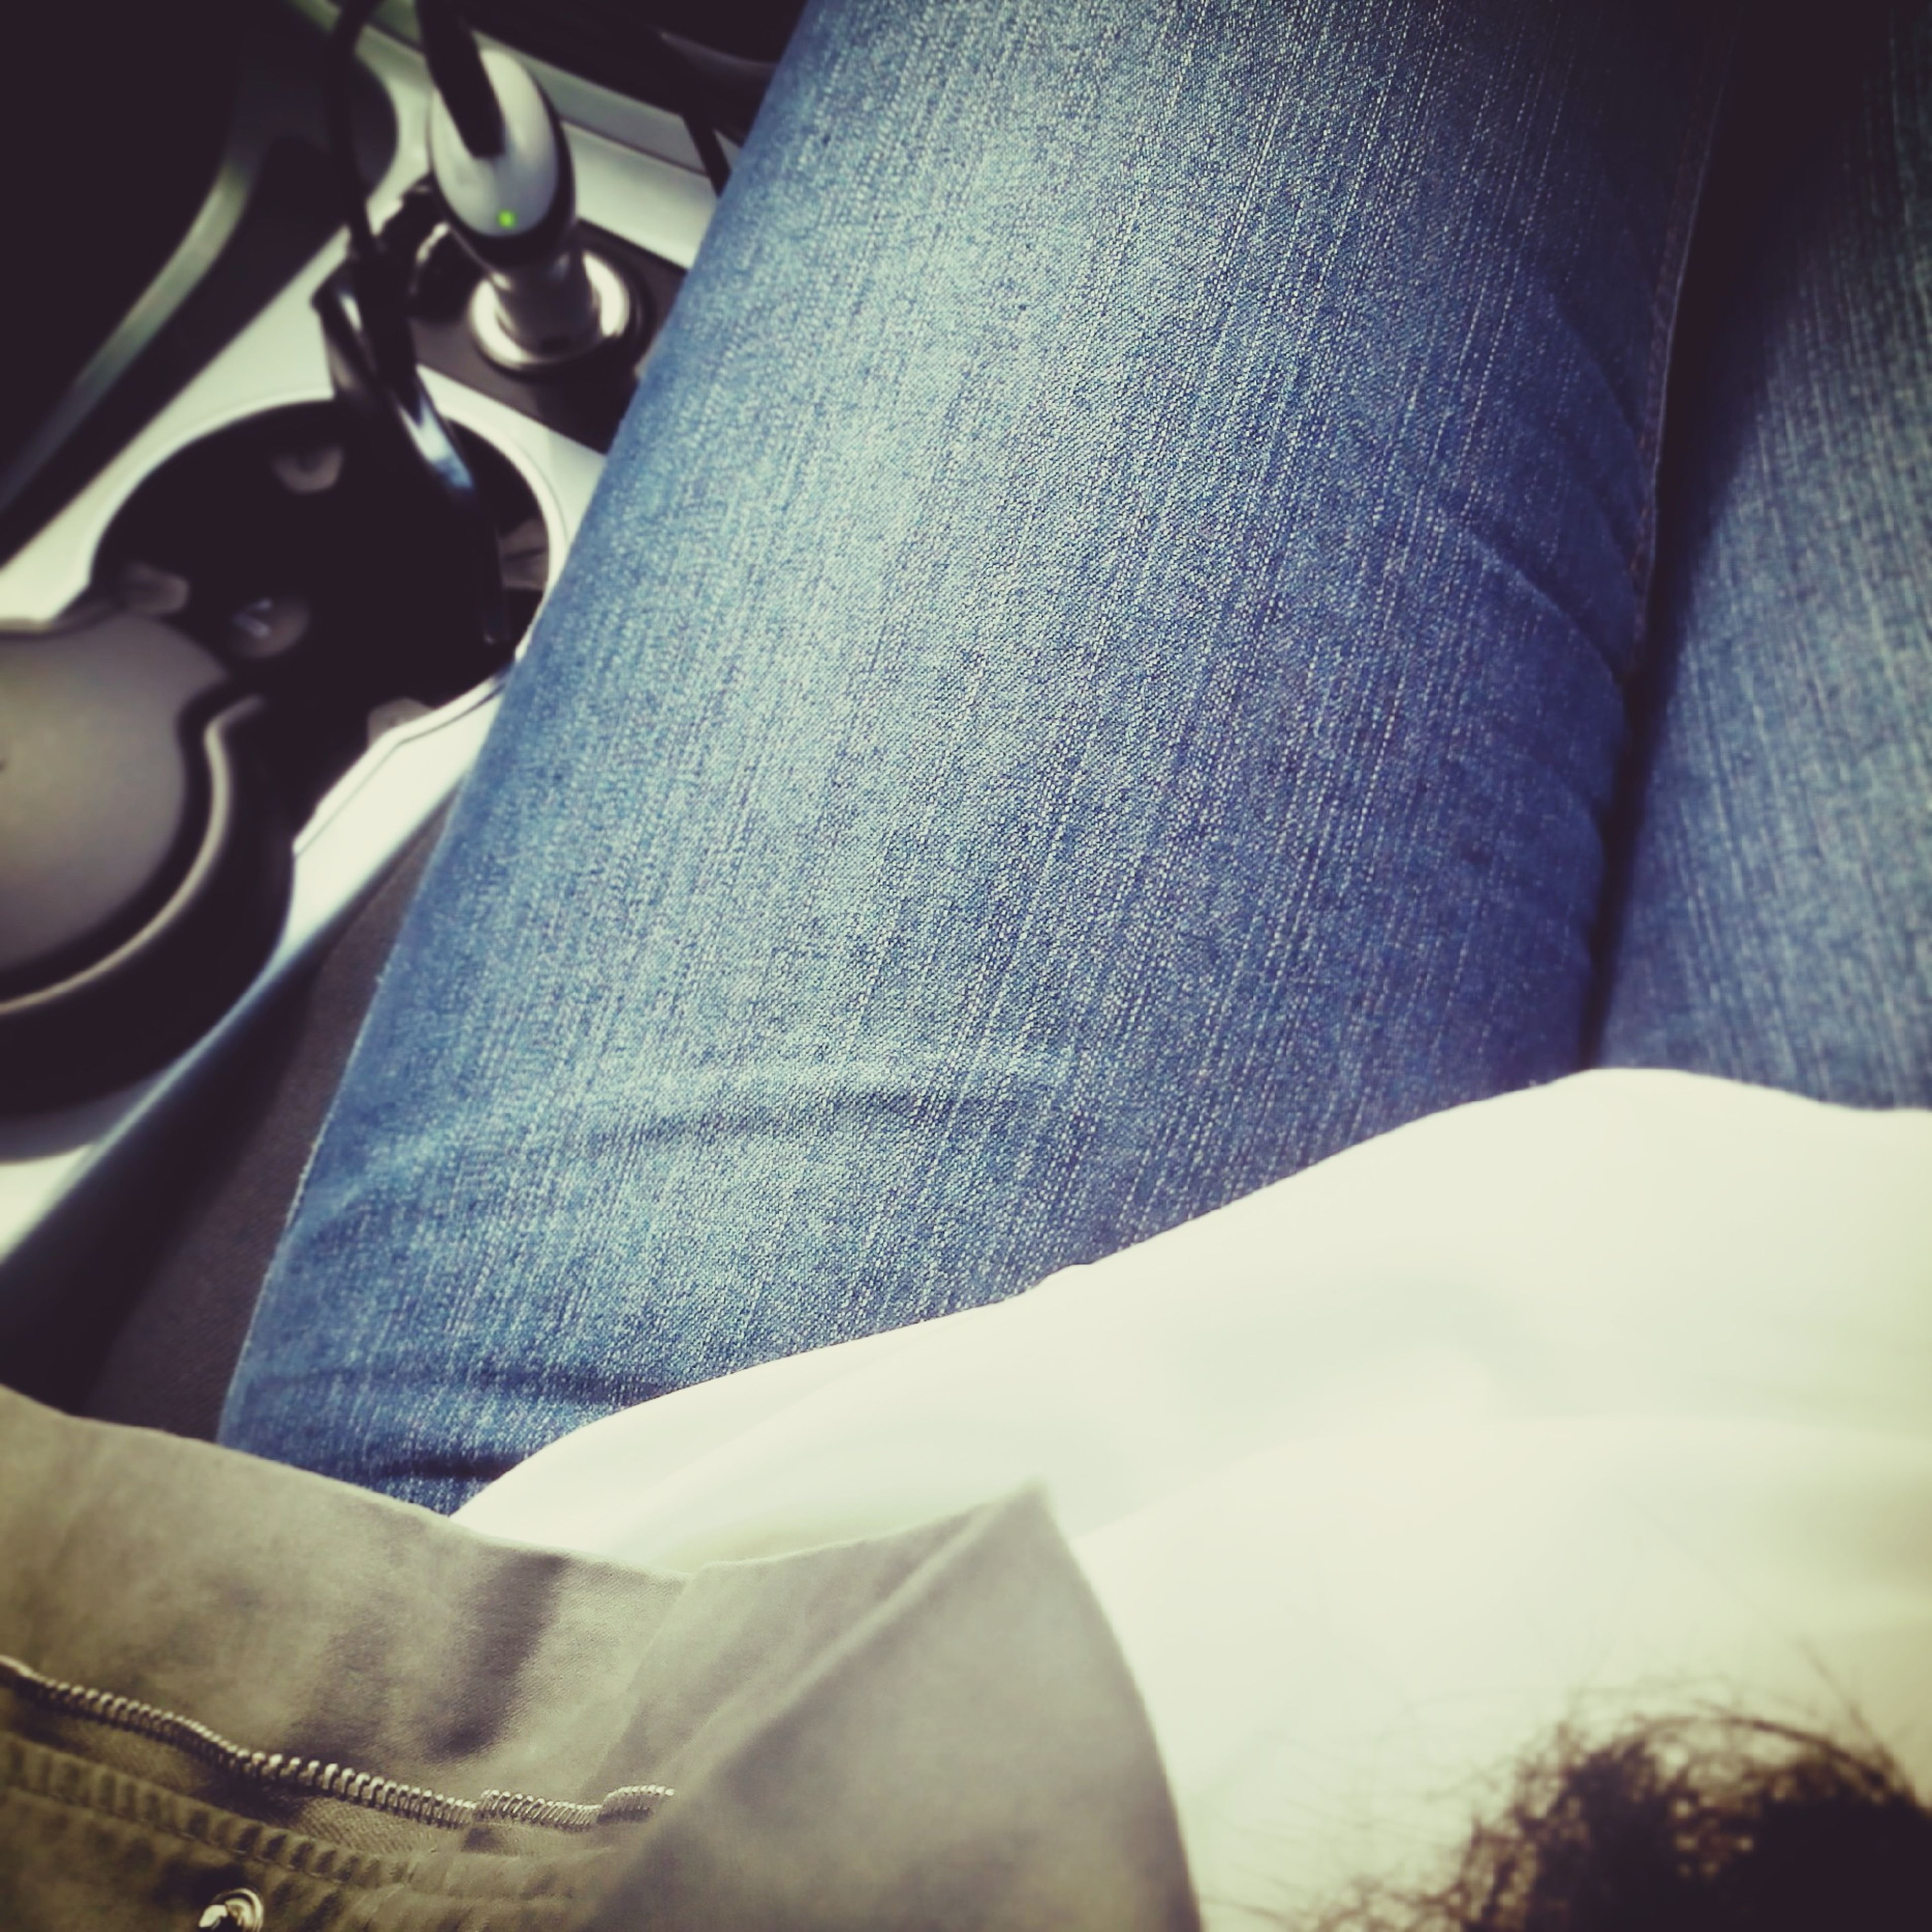 person, low section, indoors, close-up, part of, jeans, midsection, textile, personal perspective, human foot, high angle view, day, vehicle interior, relaxation, lifestyles, sunlight, unrecognizable person